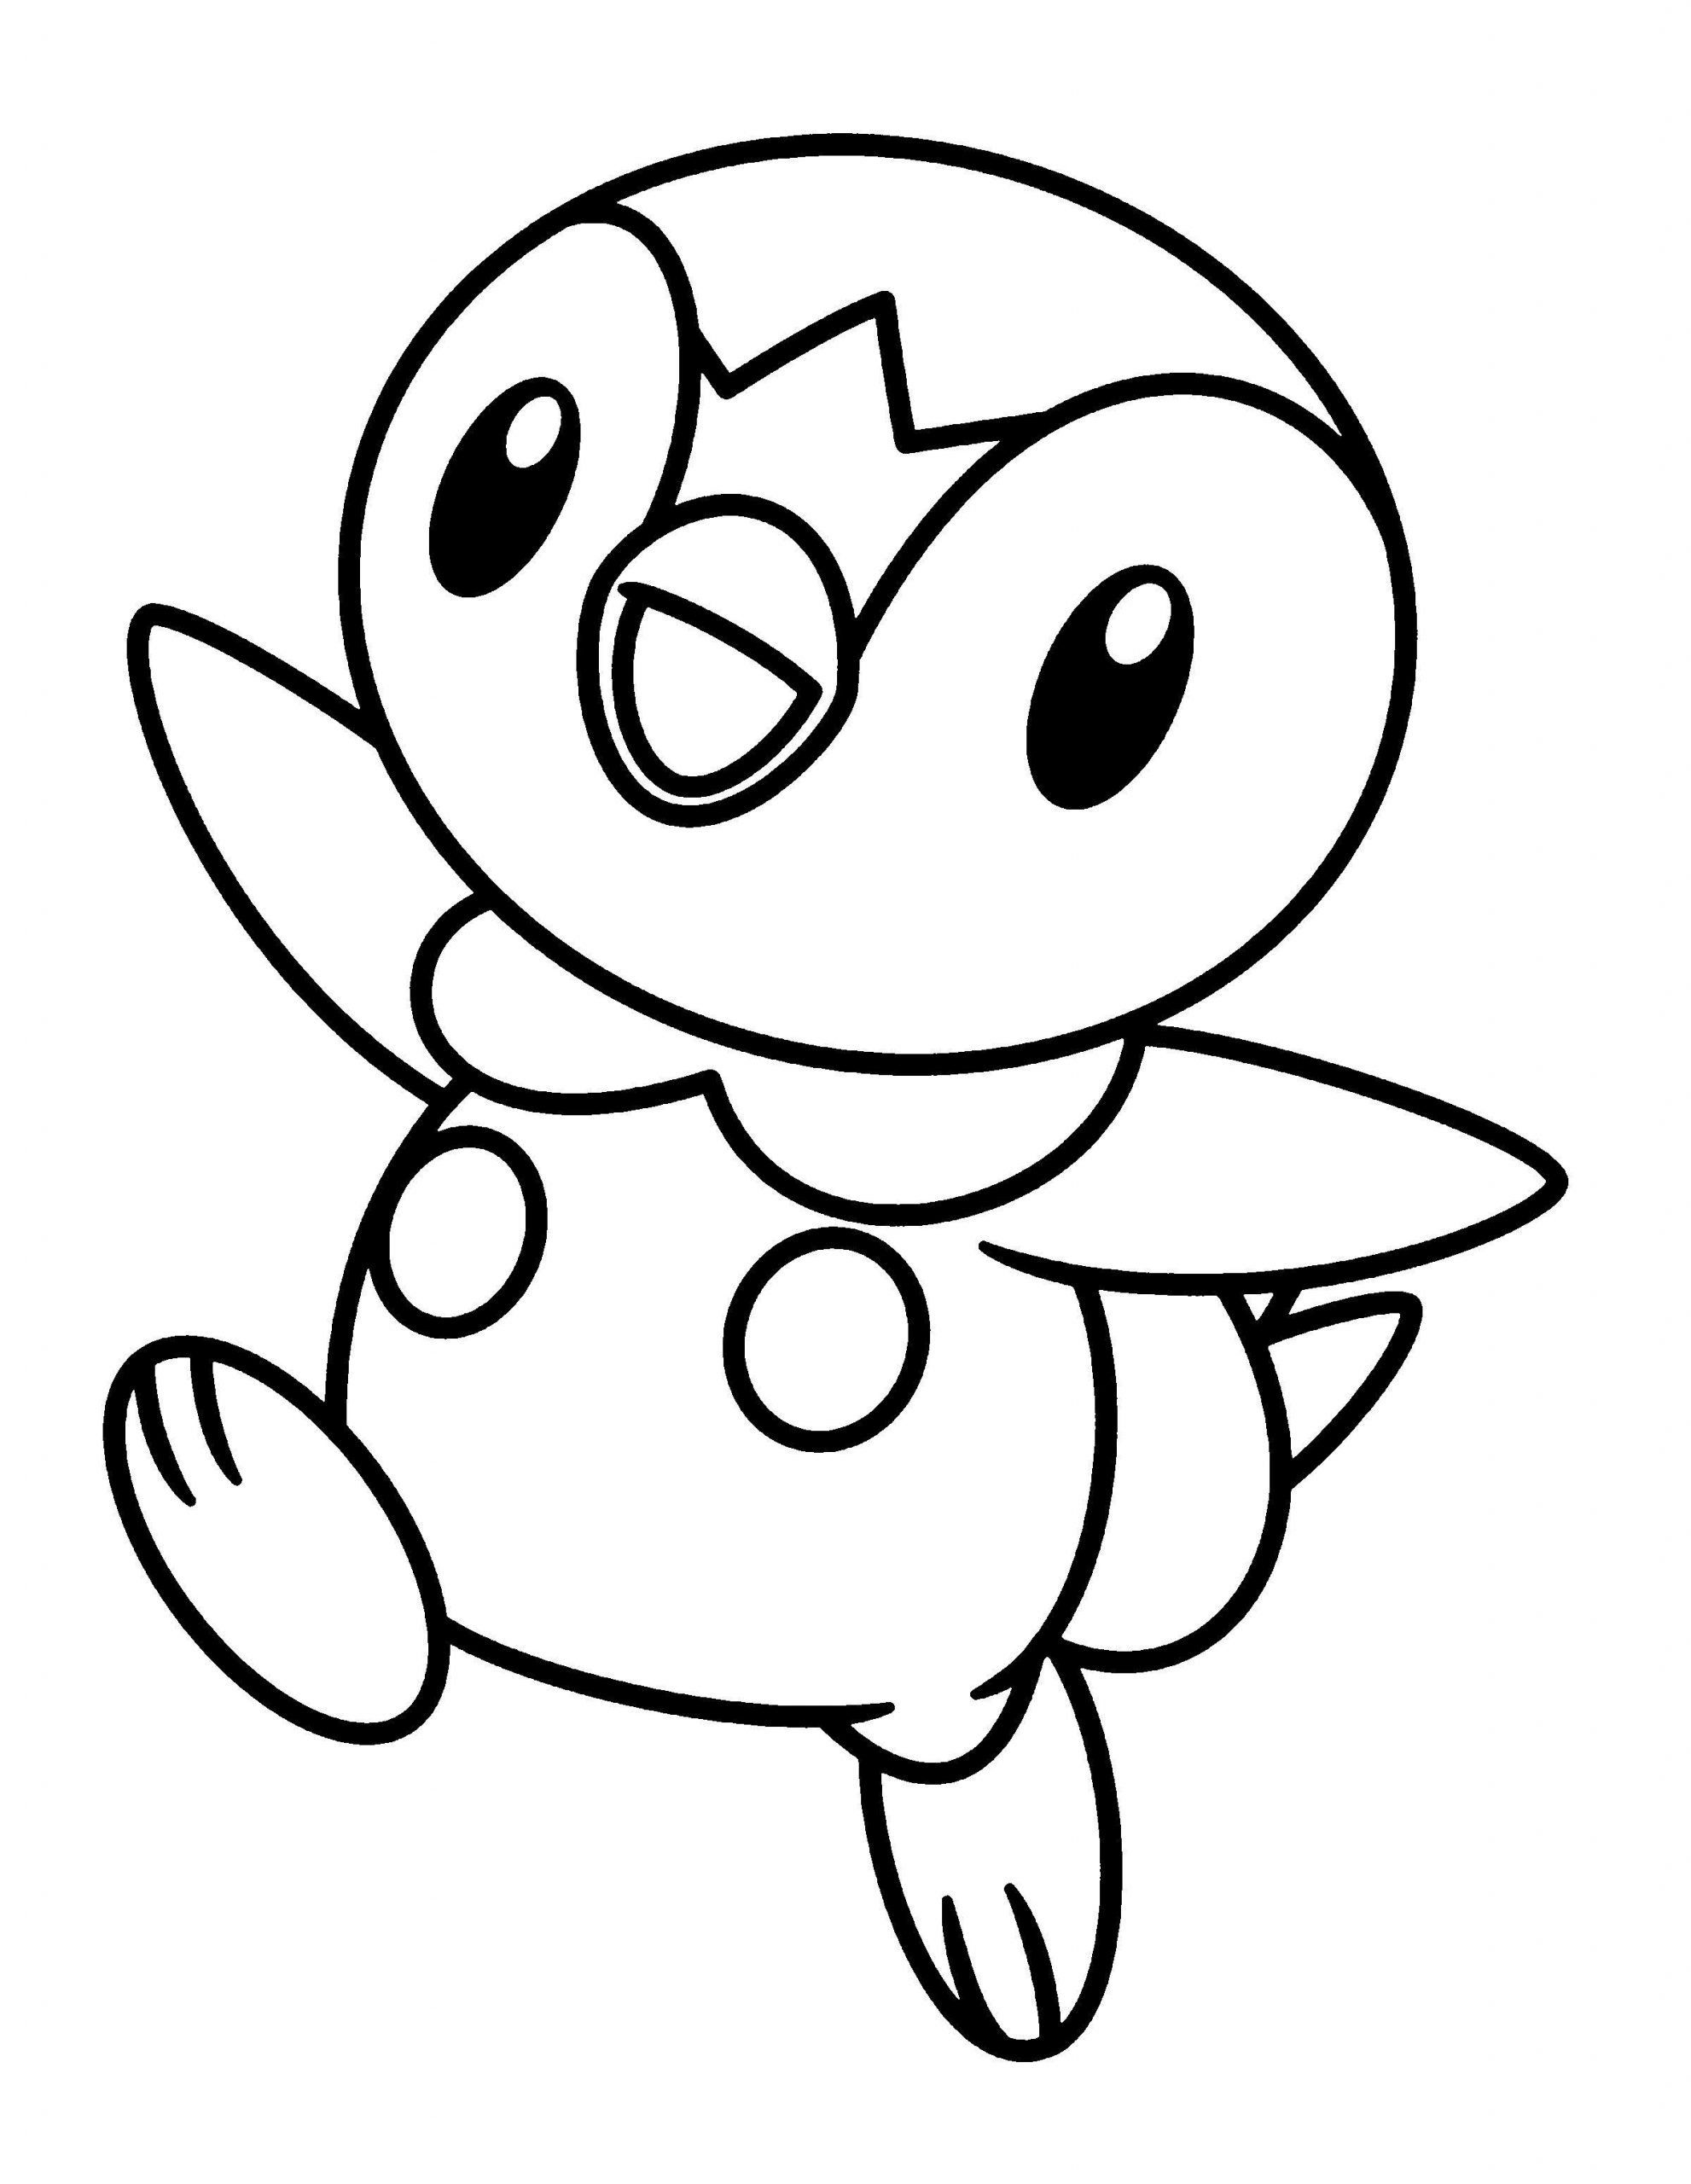 Poke Mon Coloring Pages Pokemon Coloring Pages Piplup Pokemon Coloring Pages Cartoon Coloring Pages Pokemon Coloring